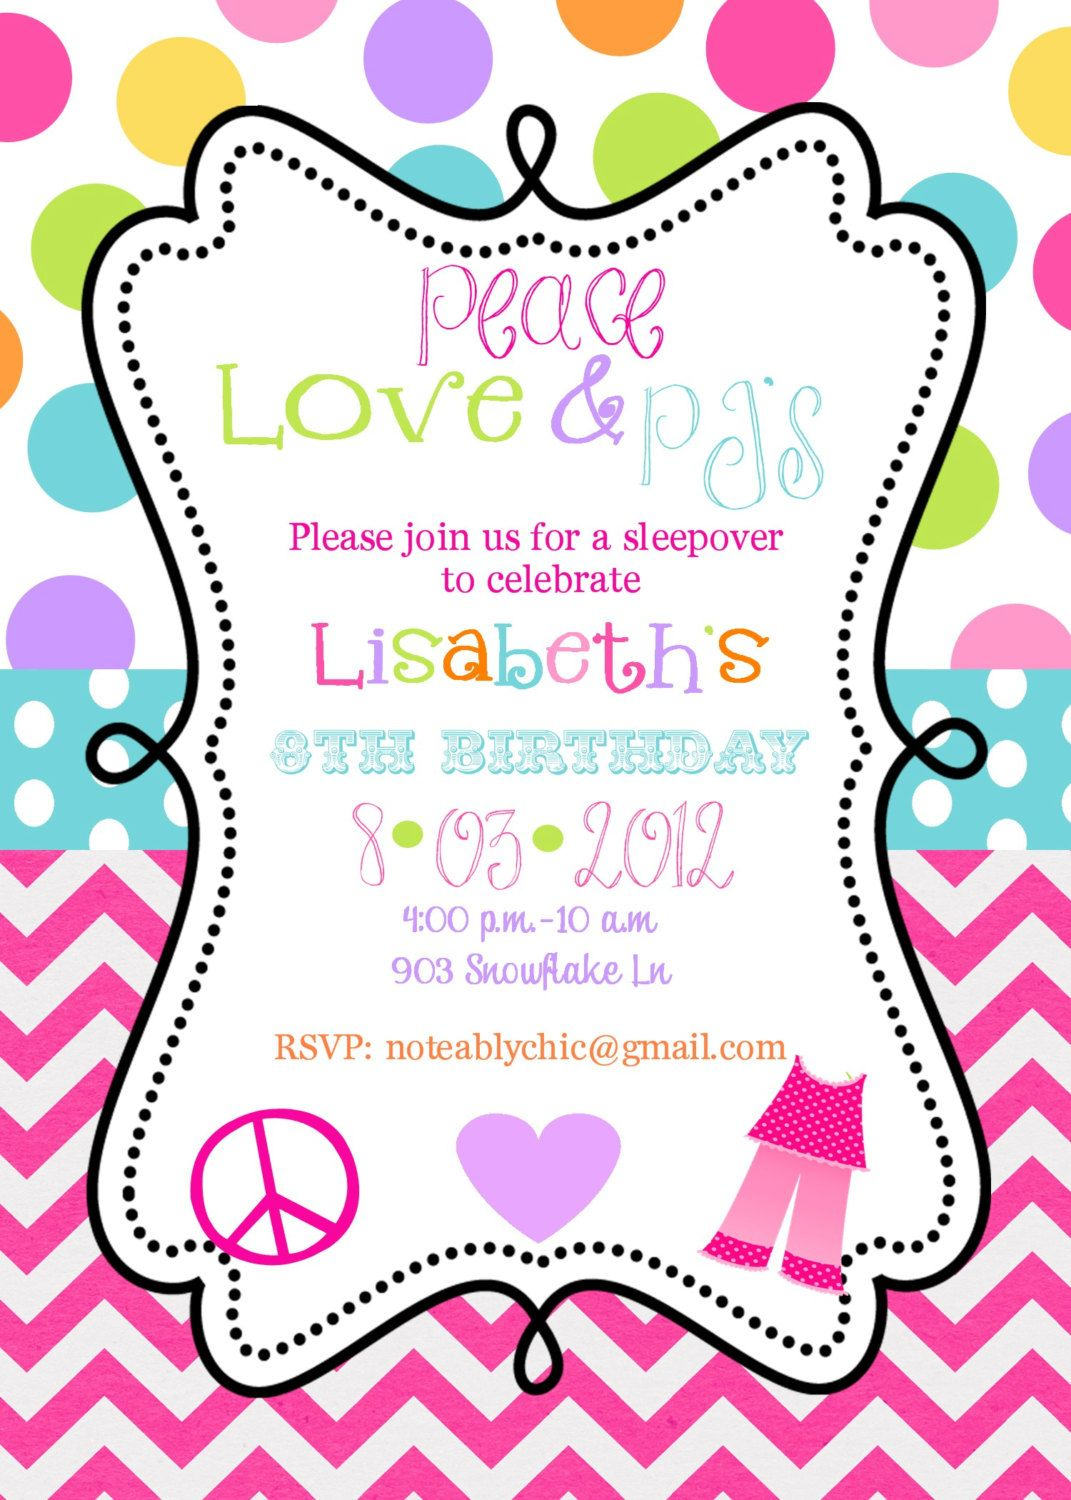 Free Birthday Invitations Templates My Birthday by Clarissa Jeanne